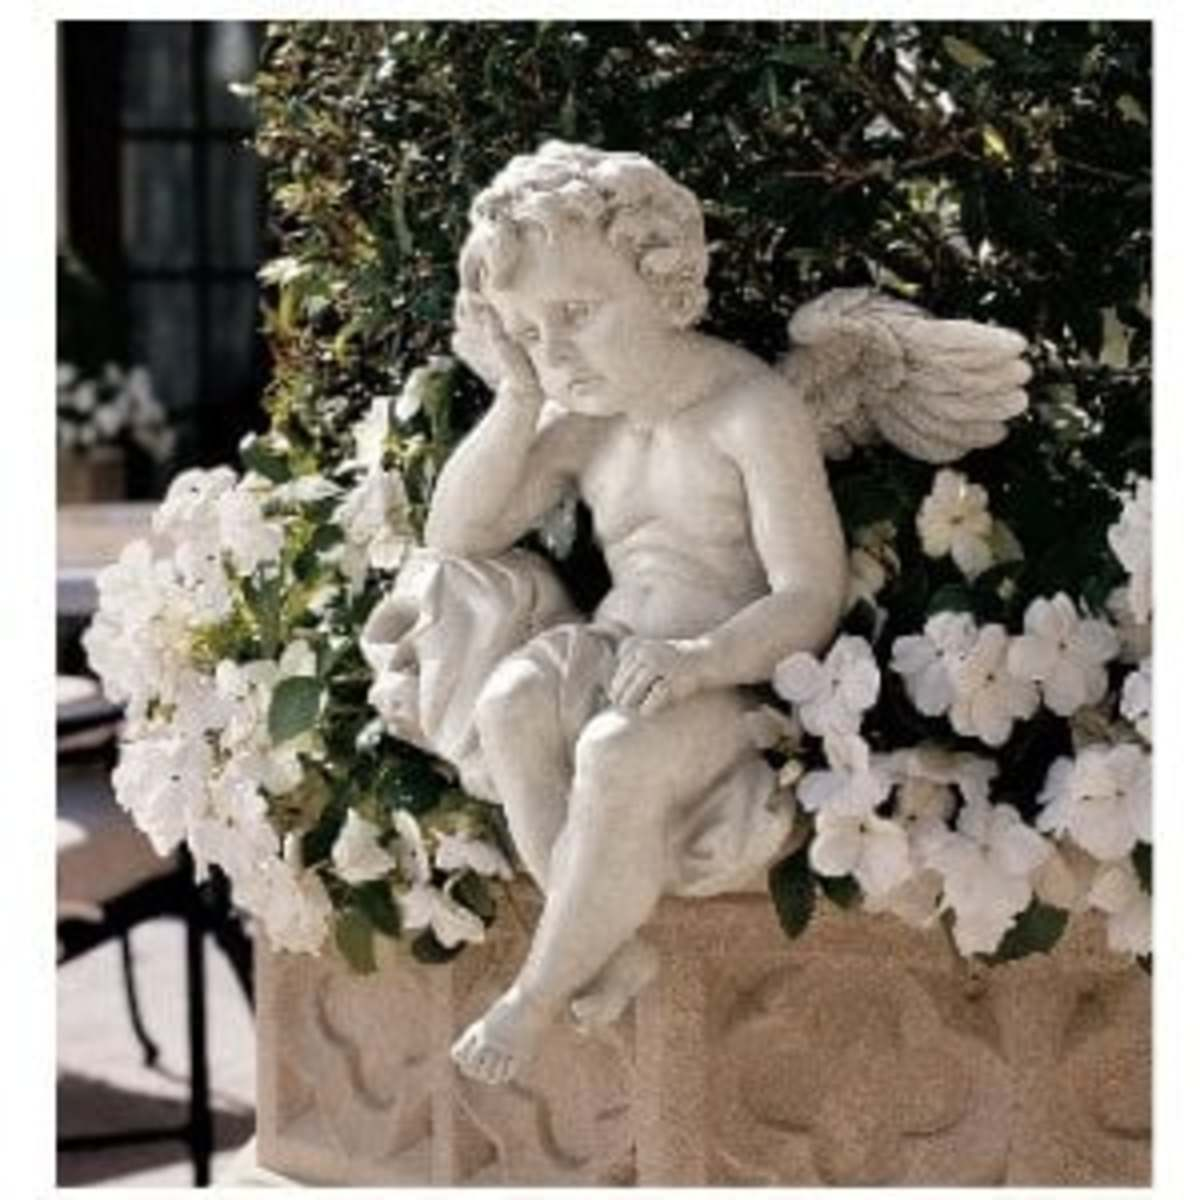 Using Garden Ornaments To Accent Your Garden